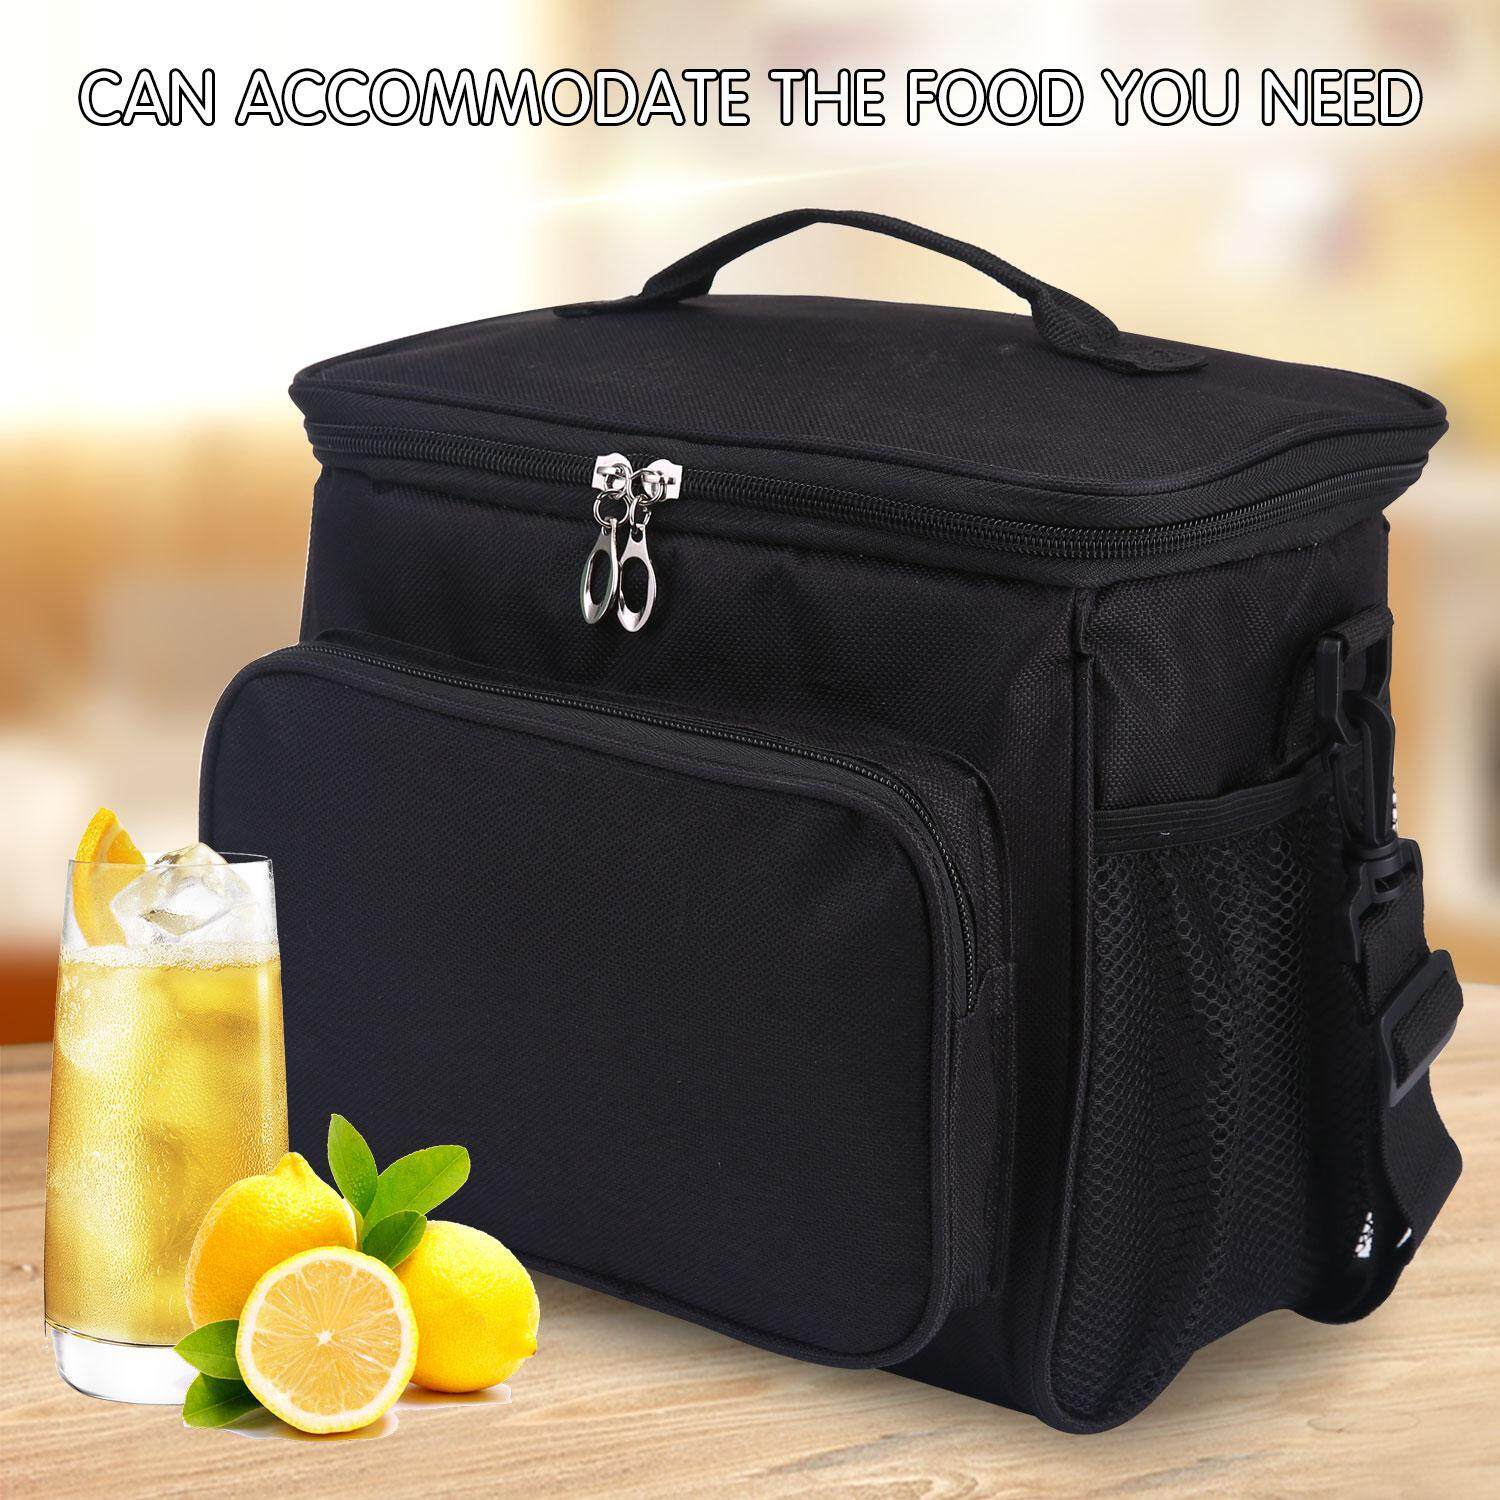 ead66d762ee leegoal Adult Lunch Box Insulated Lunch Bag Large Cooler Tote Bag For Men,  Women